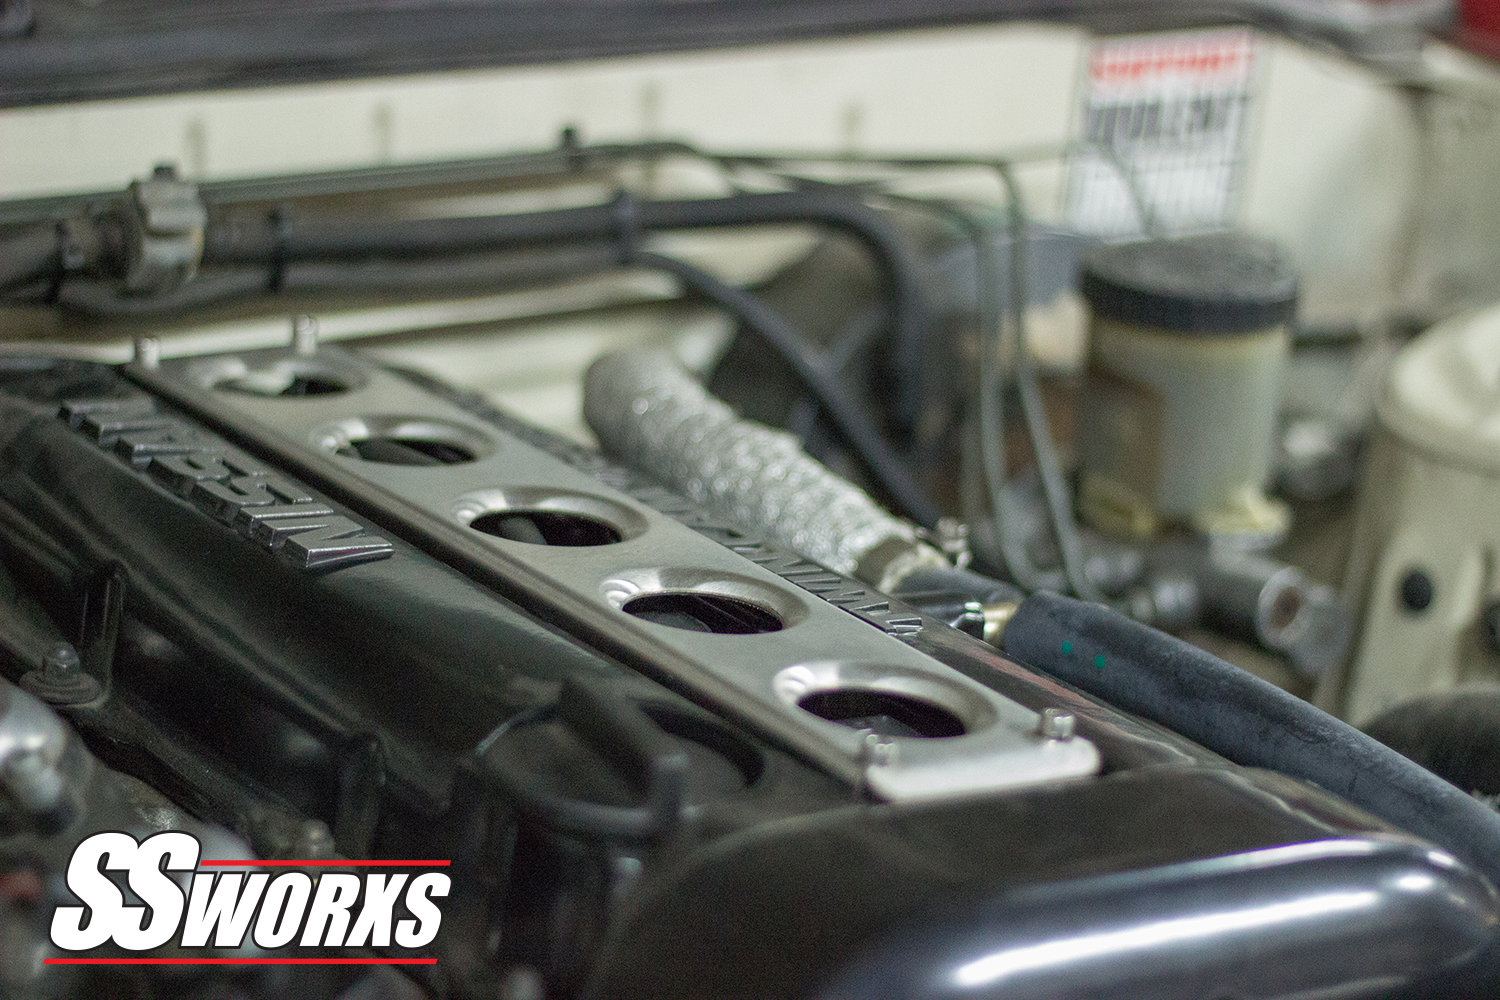 SSworxs Nissan SR20DET Coil Pack Cover DIMPLE DIE Metal Now available in a  burnt Titanium!